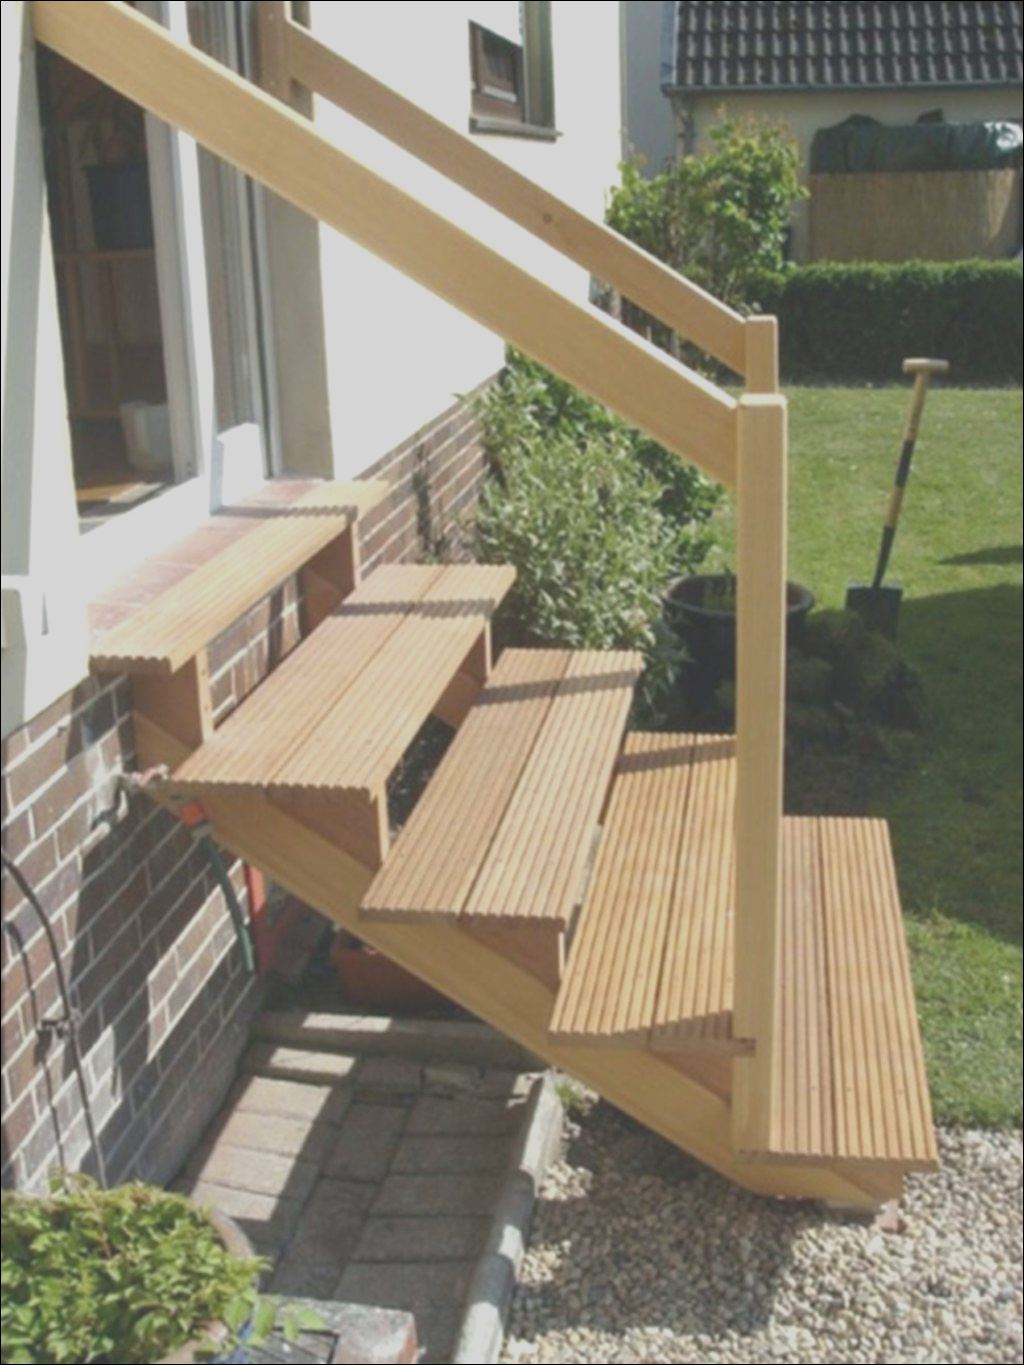 10 stunning outdoor stair design ideas for your home exterior